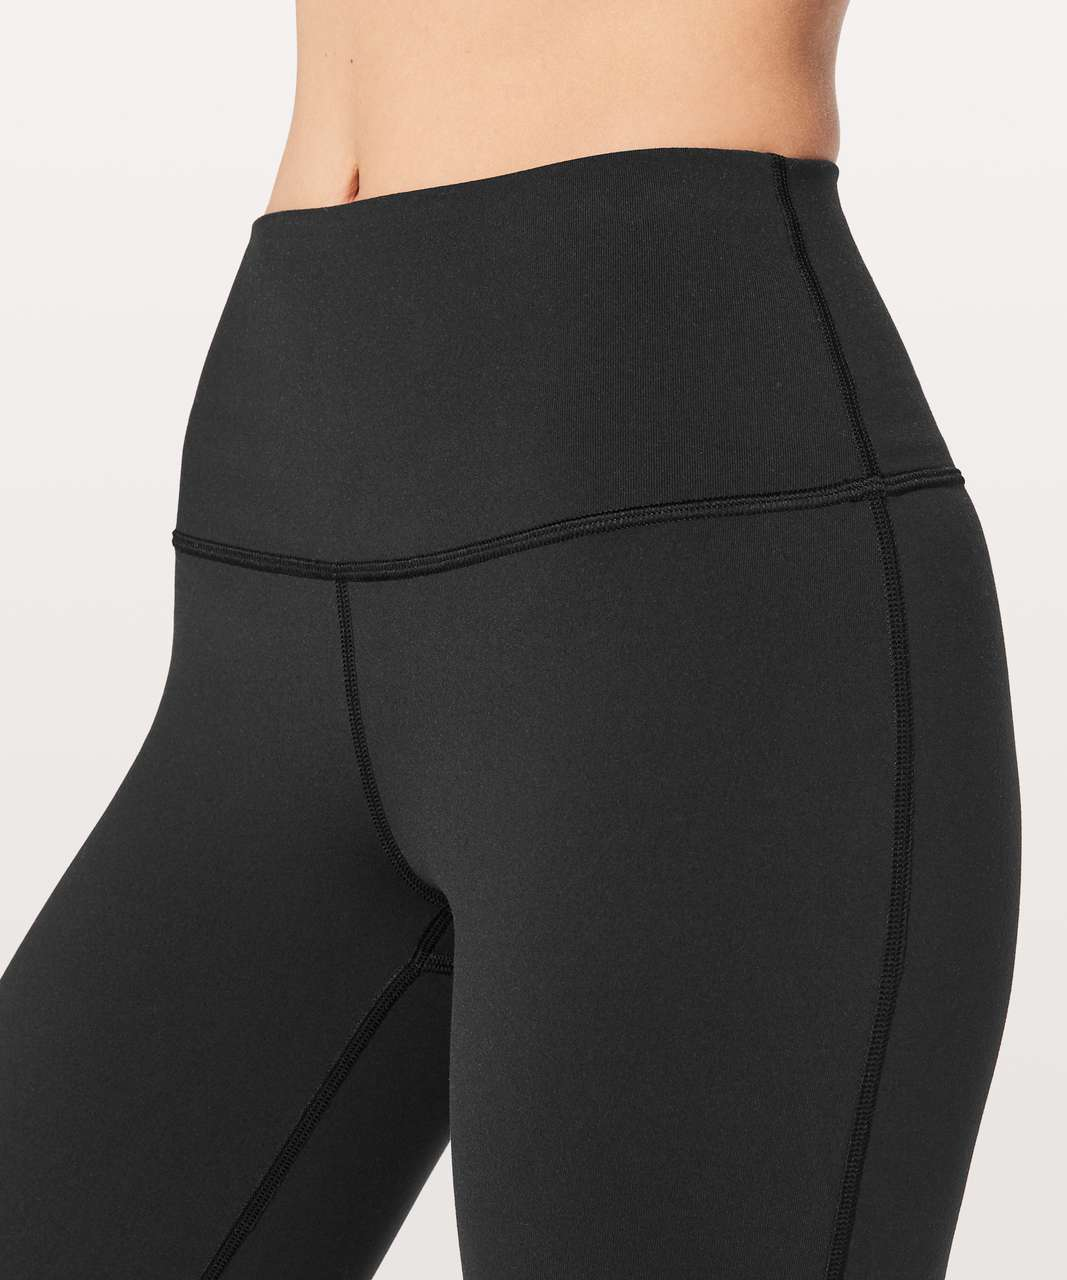 "Lululemon Throw Back Pant 32.5"" - Black"